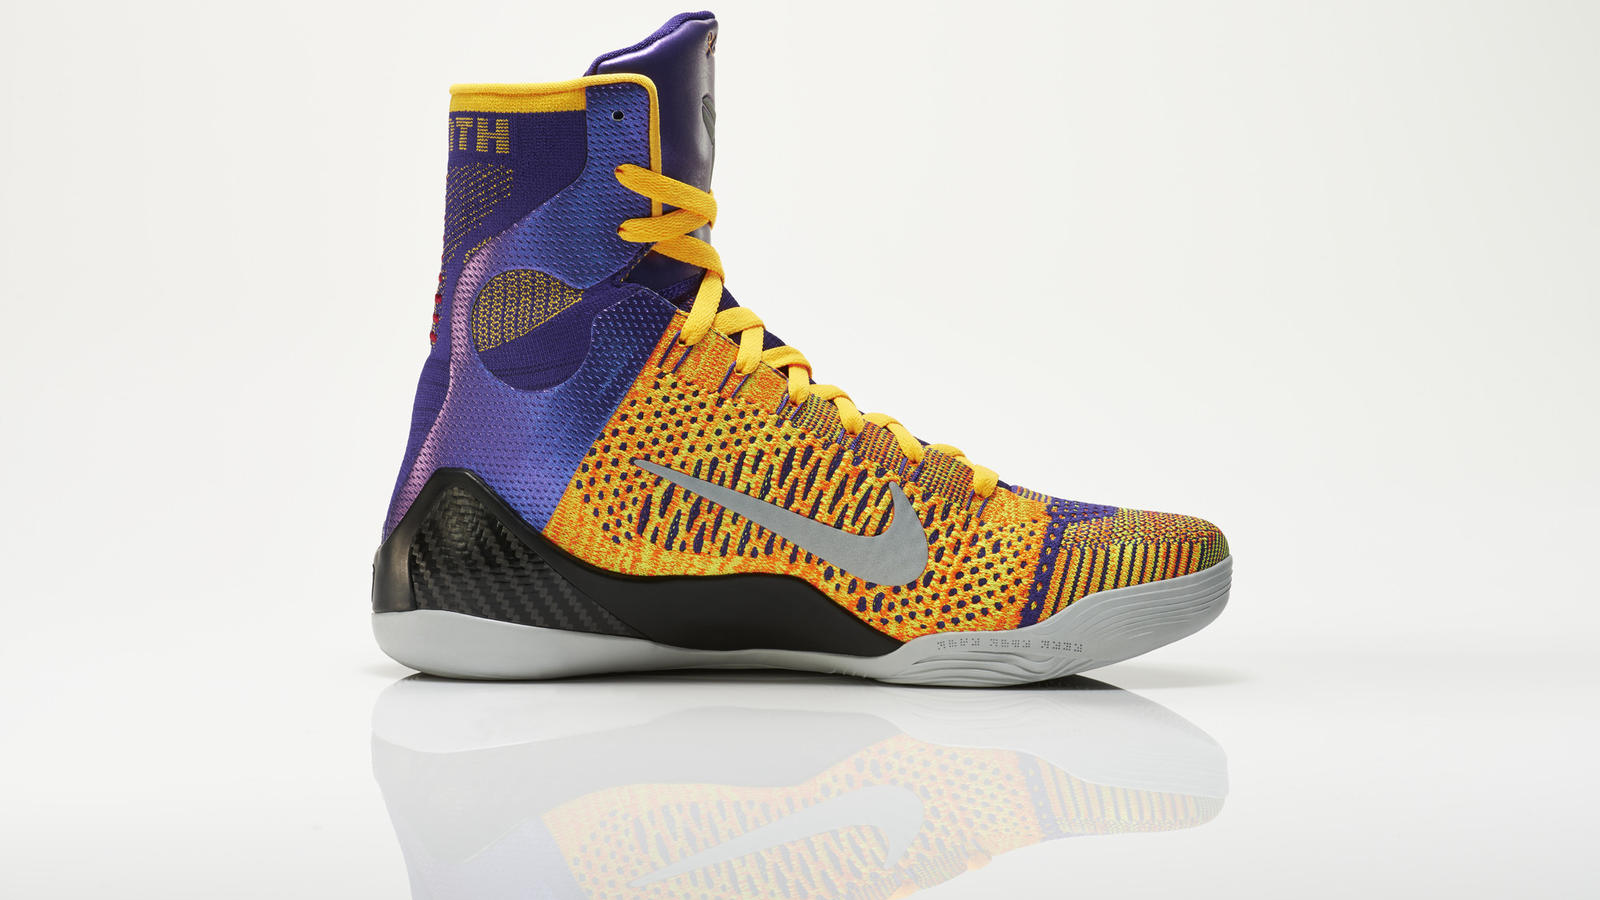 su14_bb_kobe9_elite_630847_500_return_medial_0289